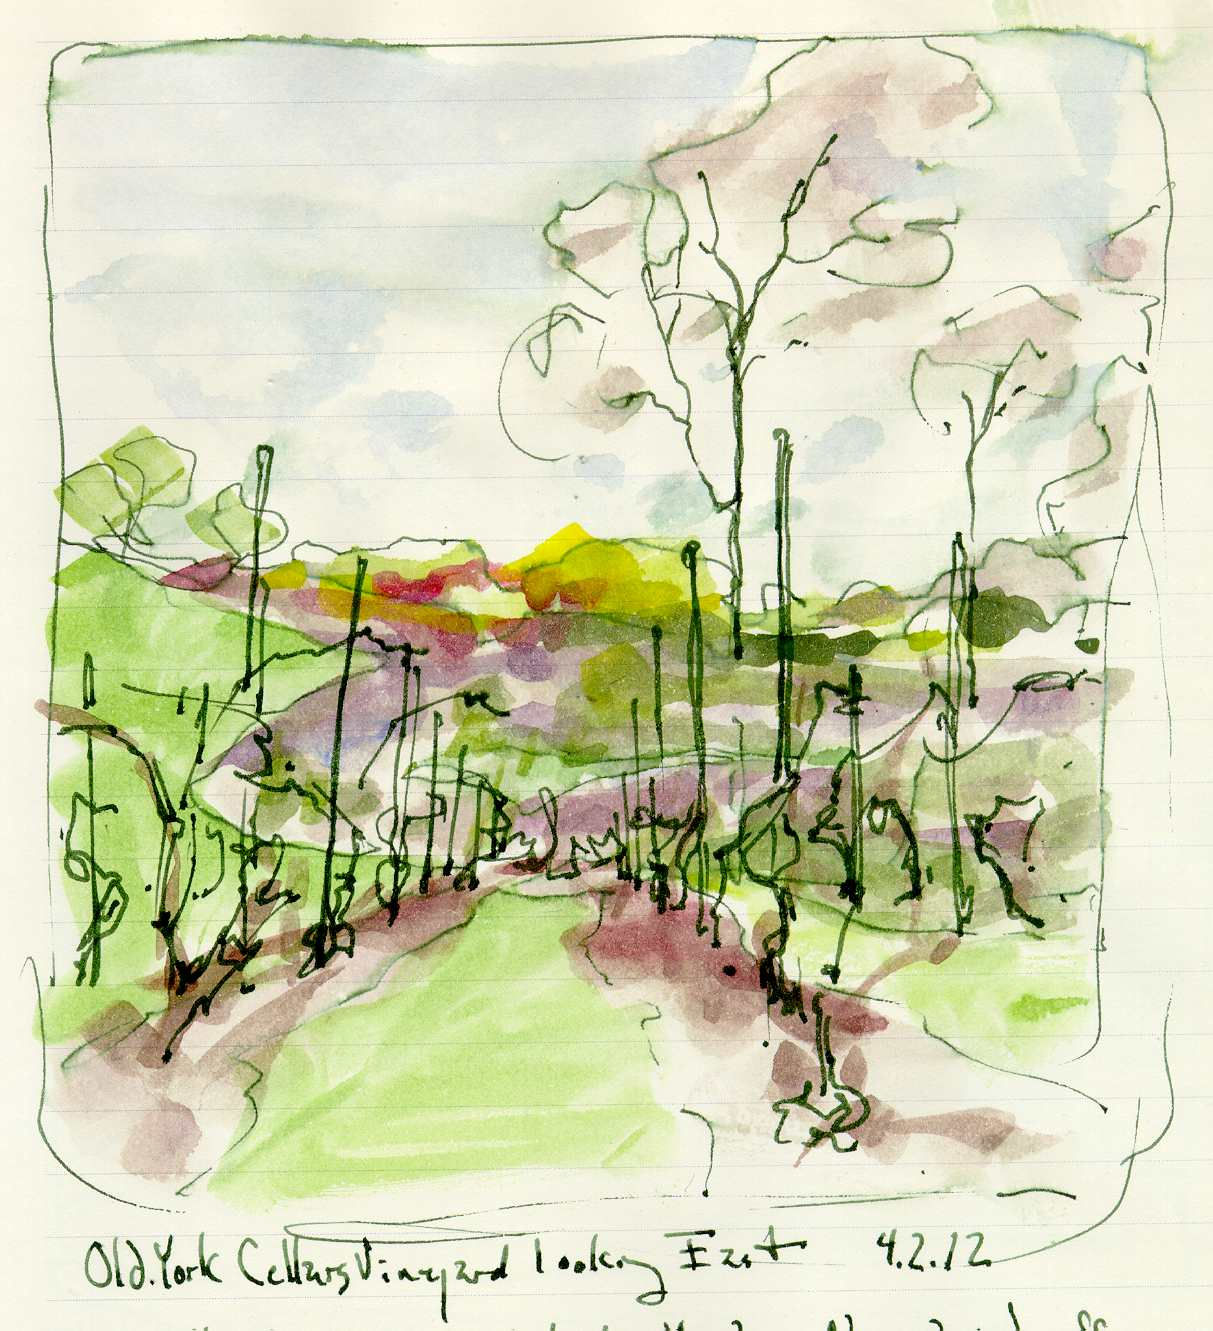 1213x1331 Old York Cellars Vineyard Ink Wtarcolor Sketchbook Drawing Chris